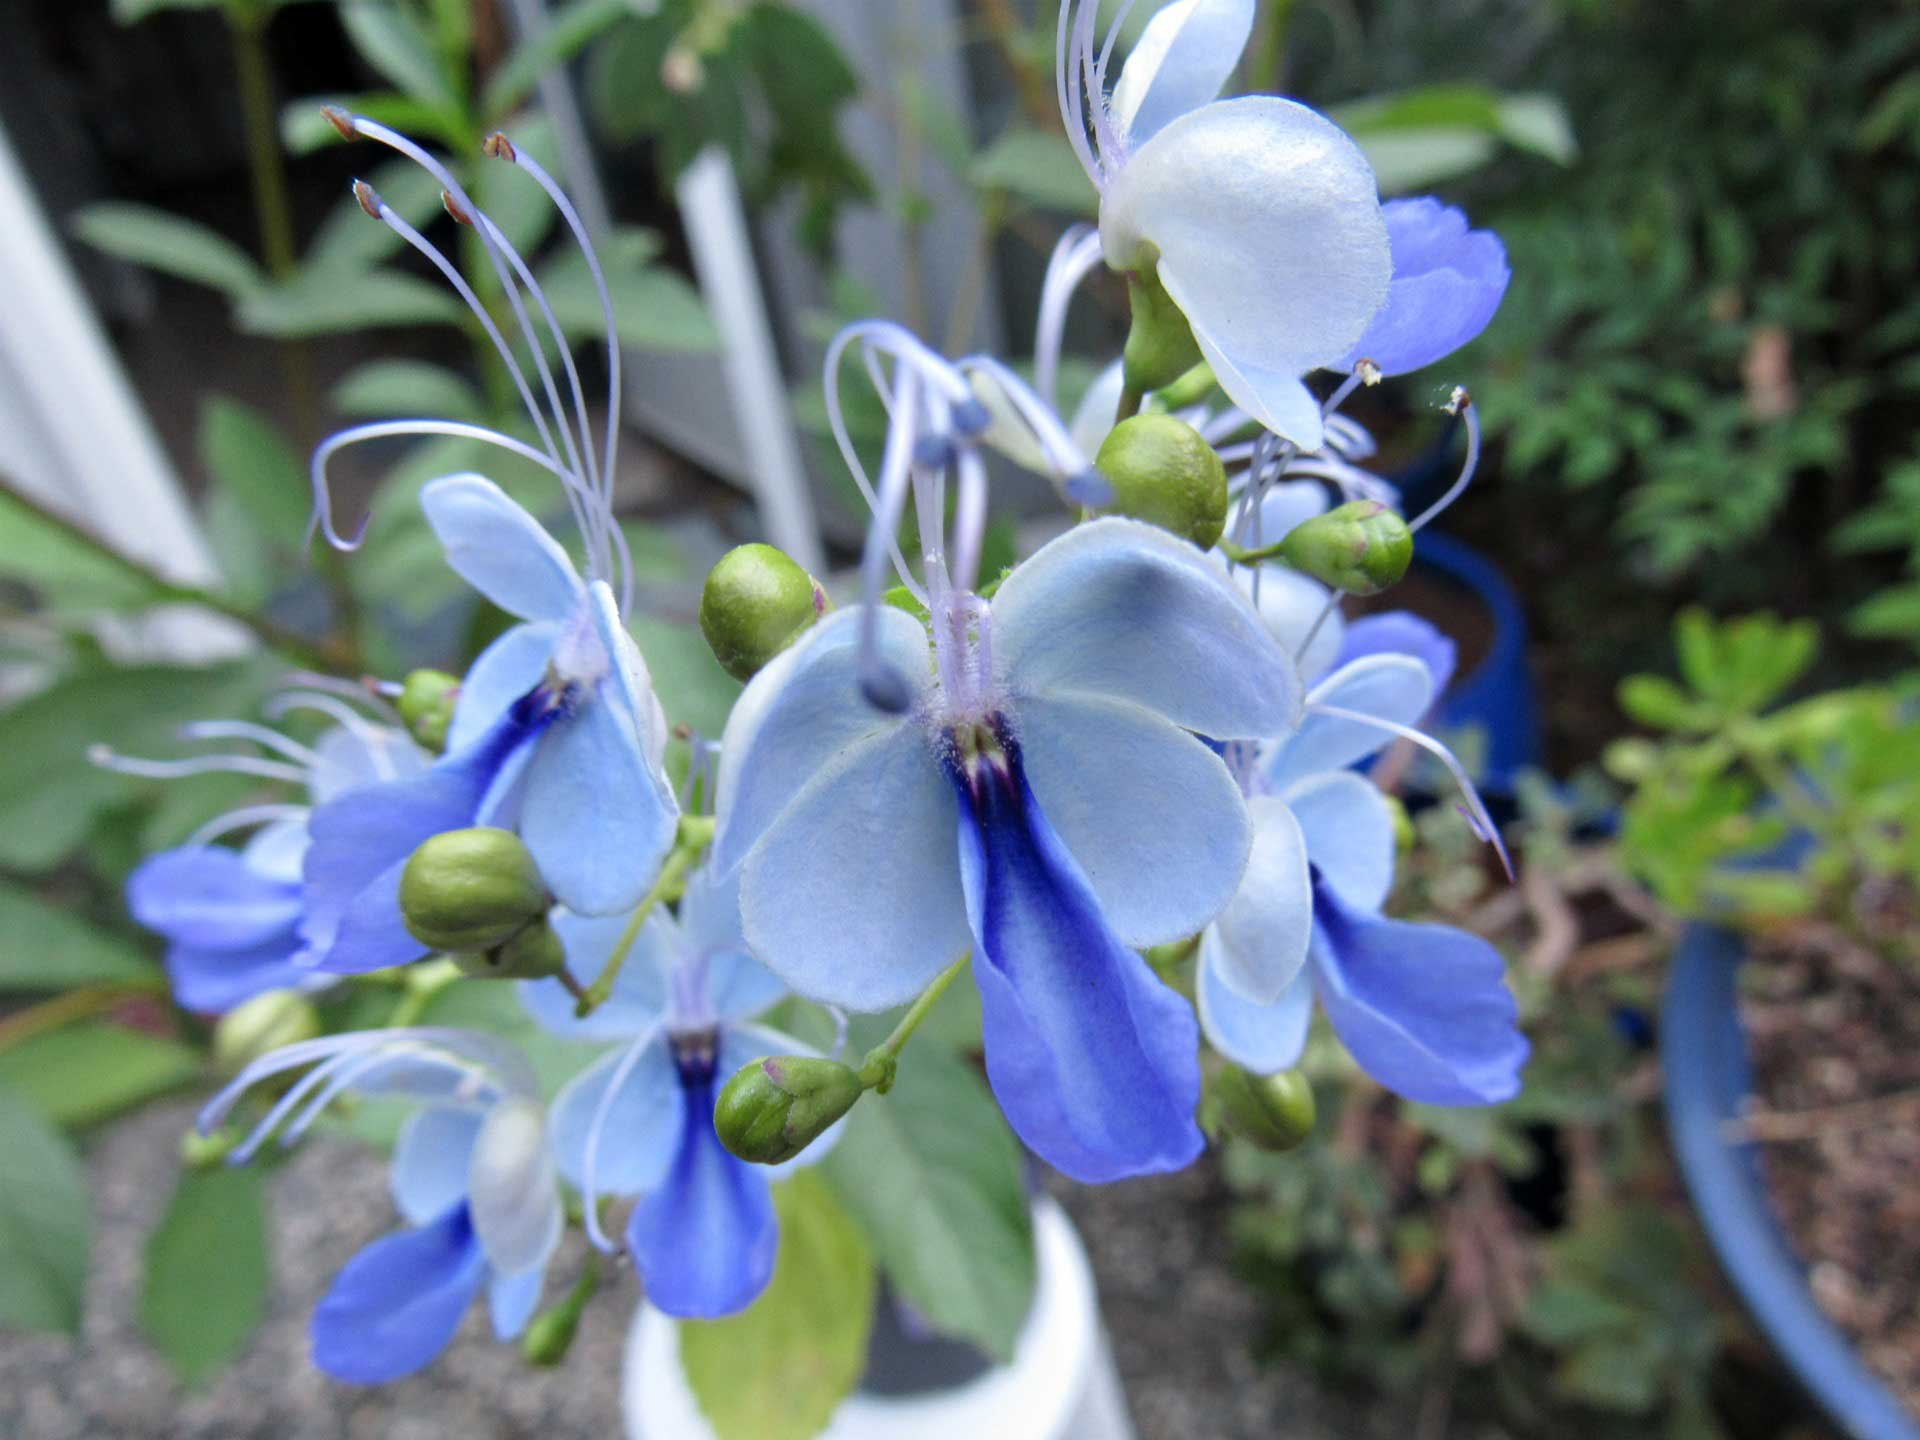 Clerodendrum-ugandese